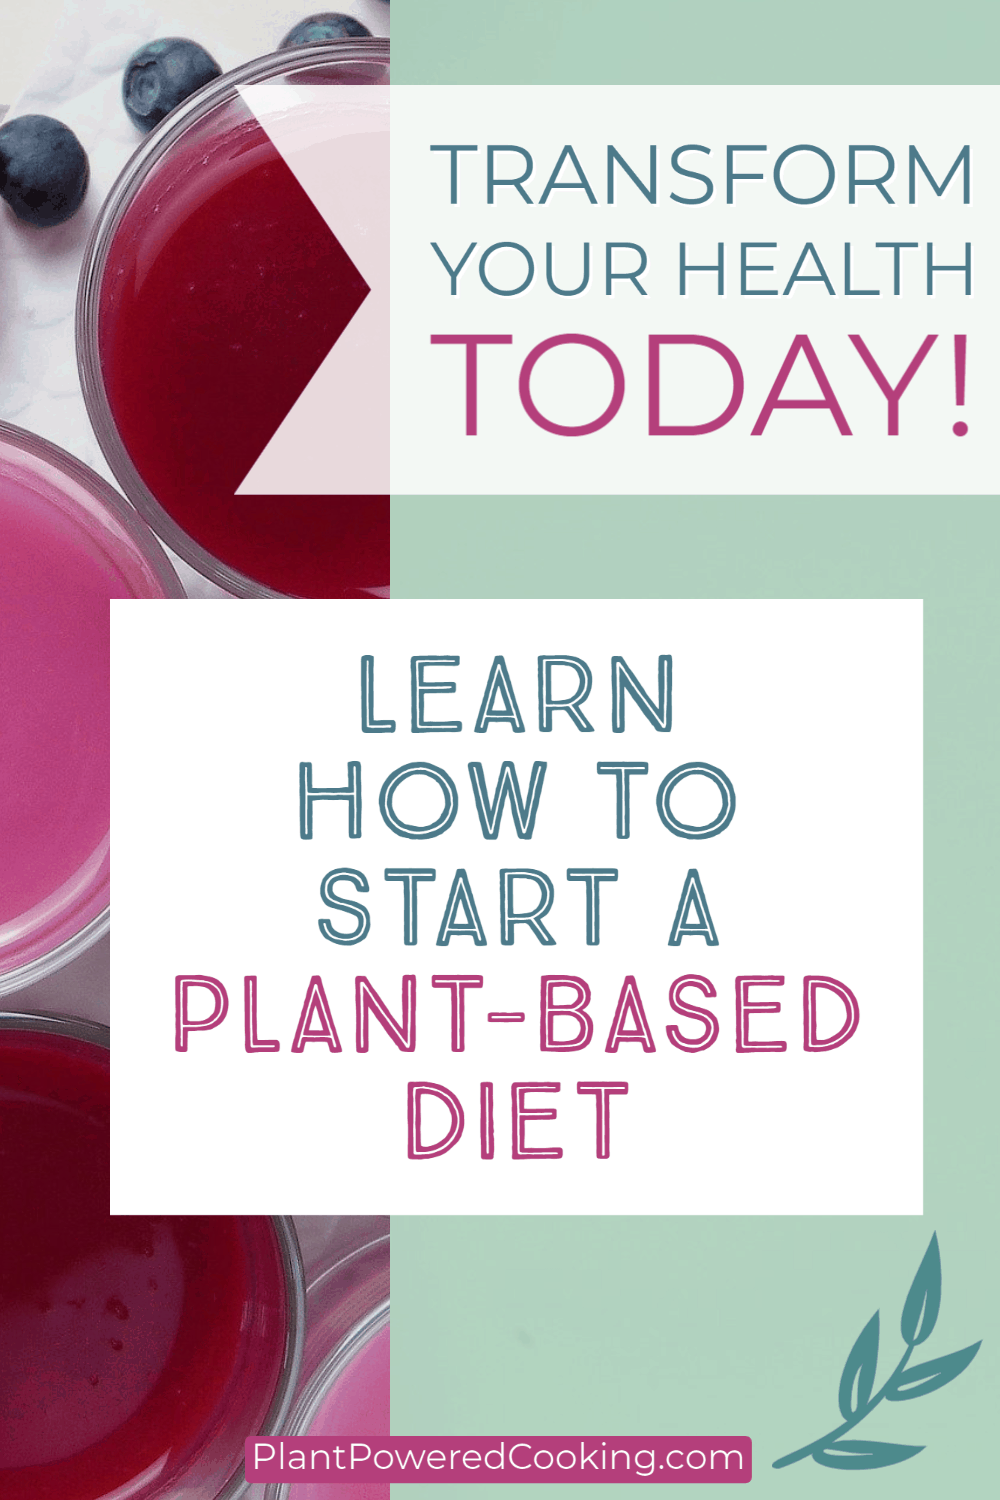 How to Start a Plant-Based Diet Pin Image